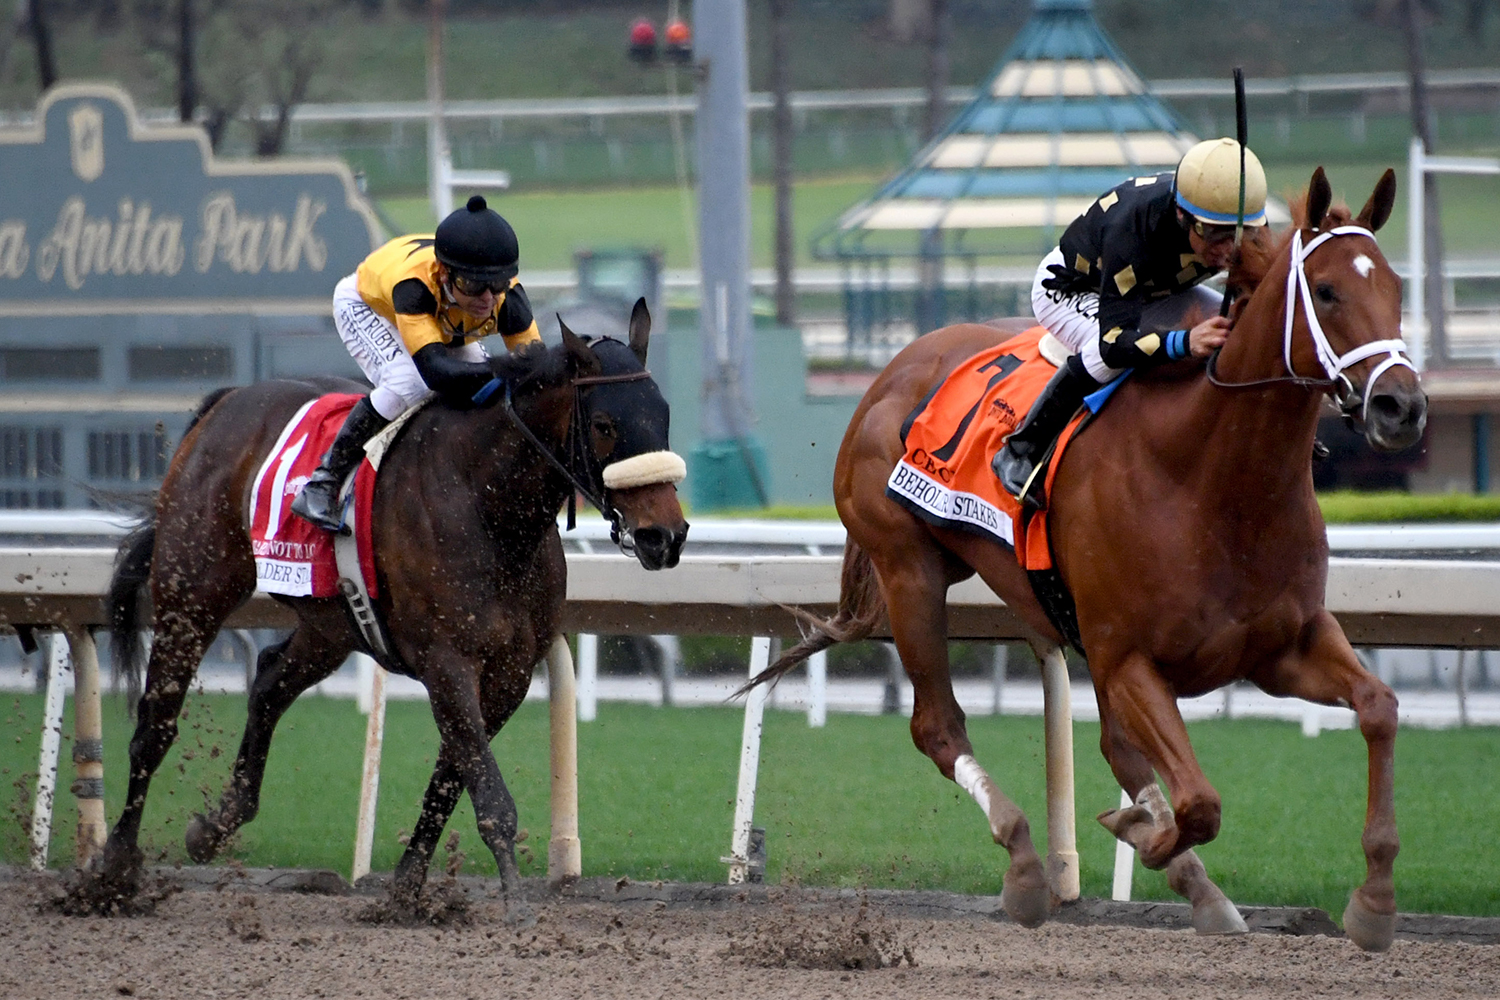 Horse Racing Is One of the Last Sports Standing in US